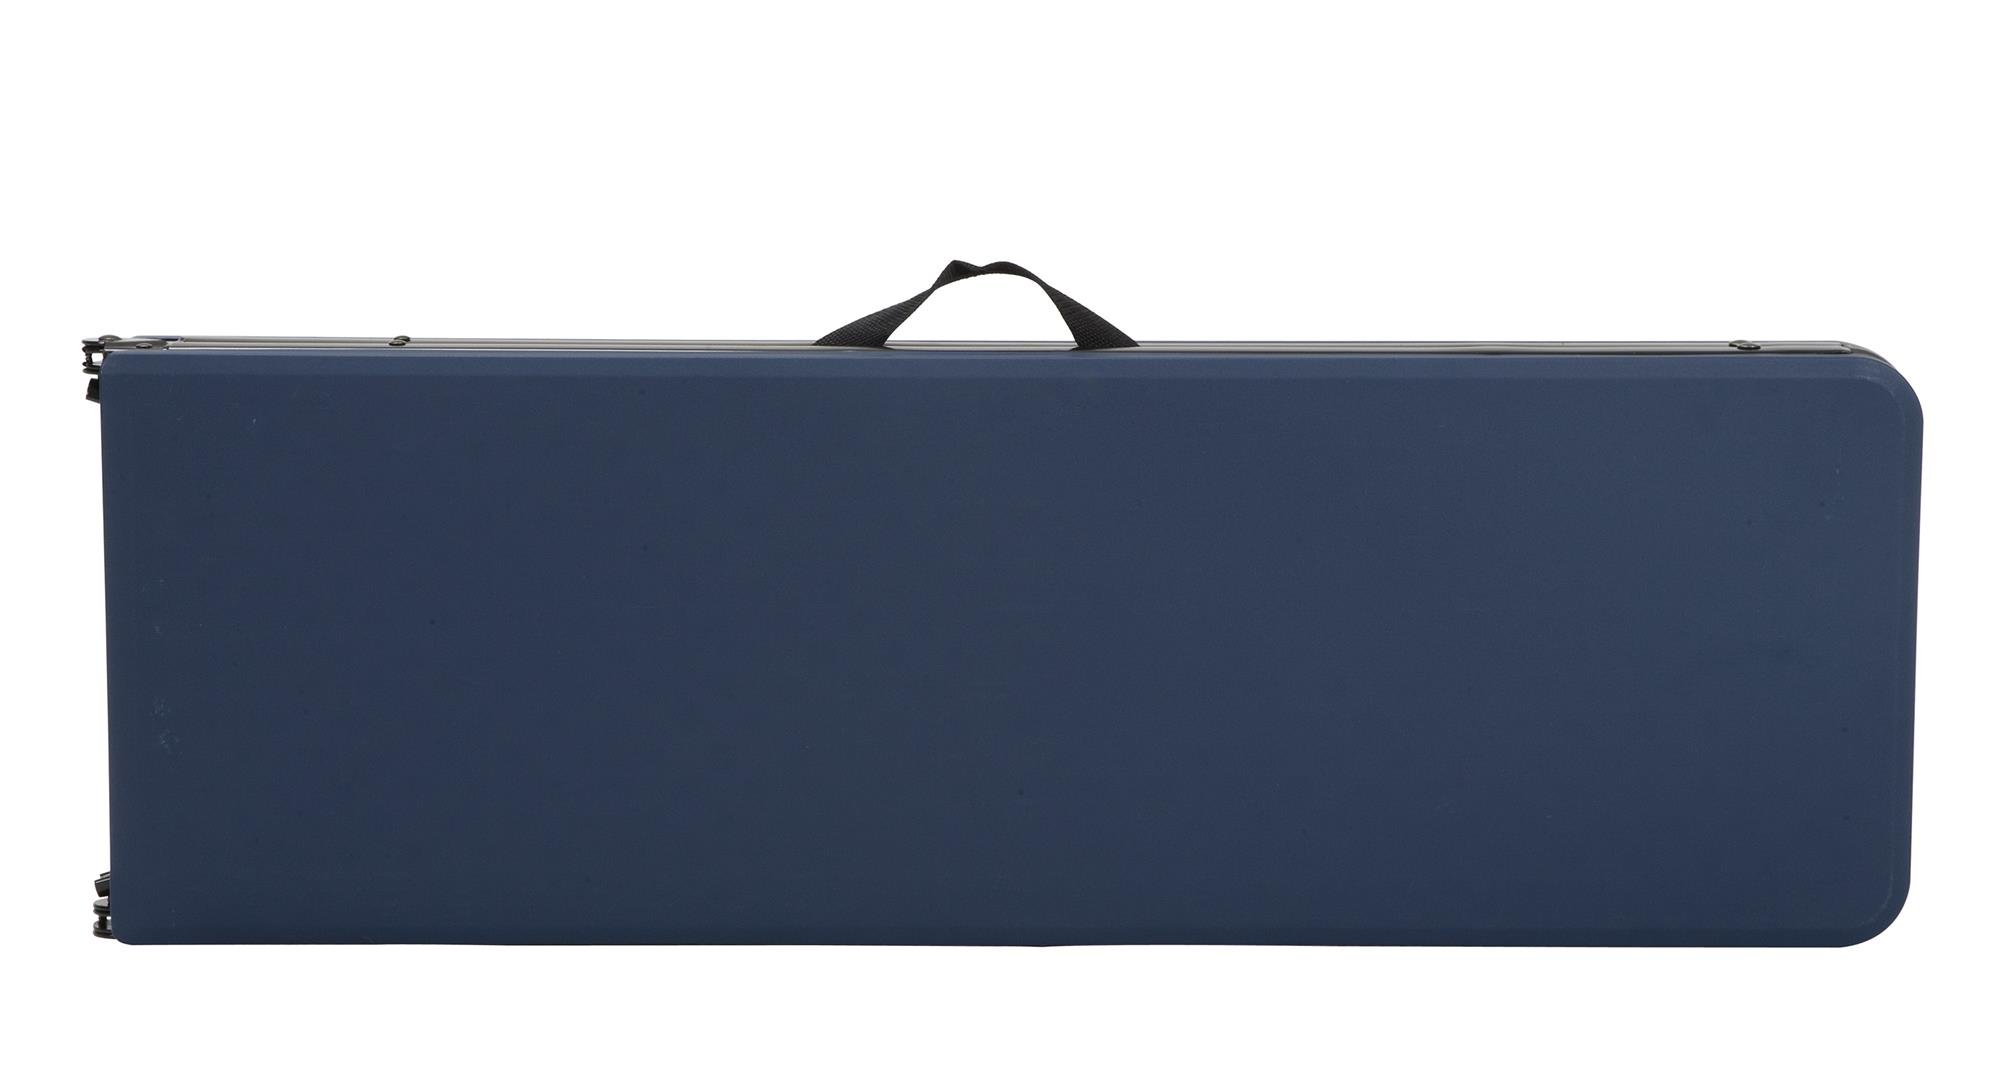 COSCO 6 ft. Indoor Outdoor Center Fold Tailgate Bench with Carrying Handle, Dark Blue Bench Top, Black Frame, 2-pack by Cosco Outdoor Living (Image #5)